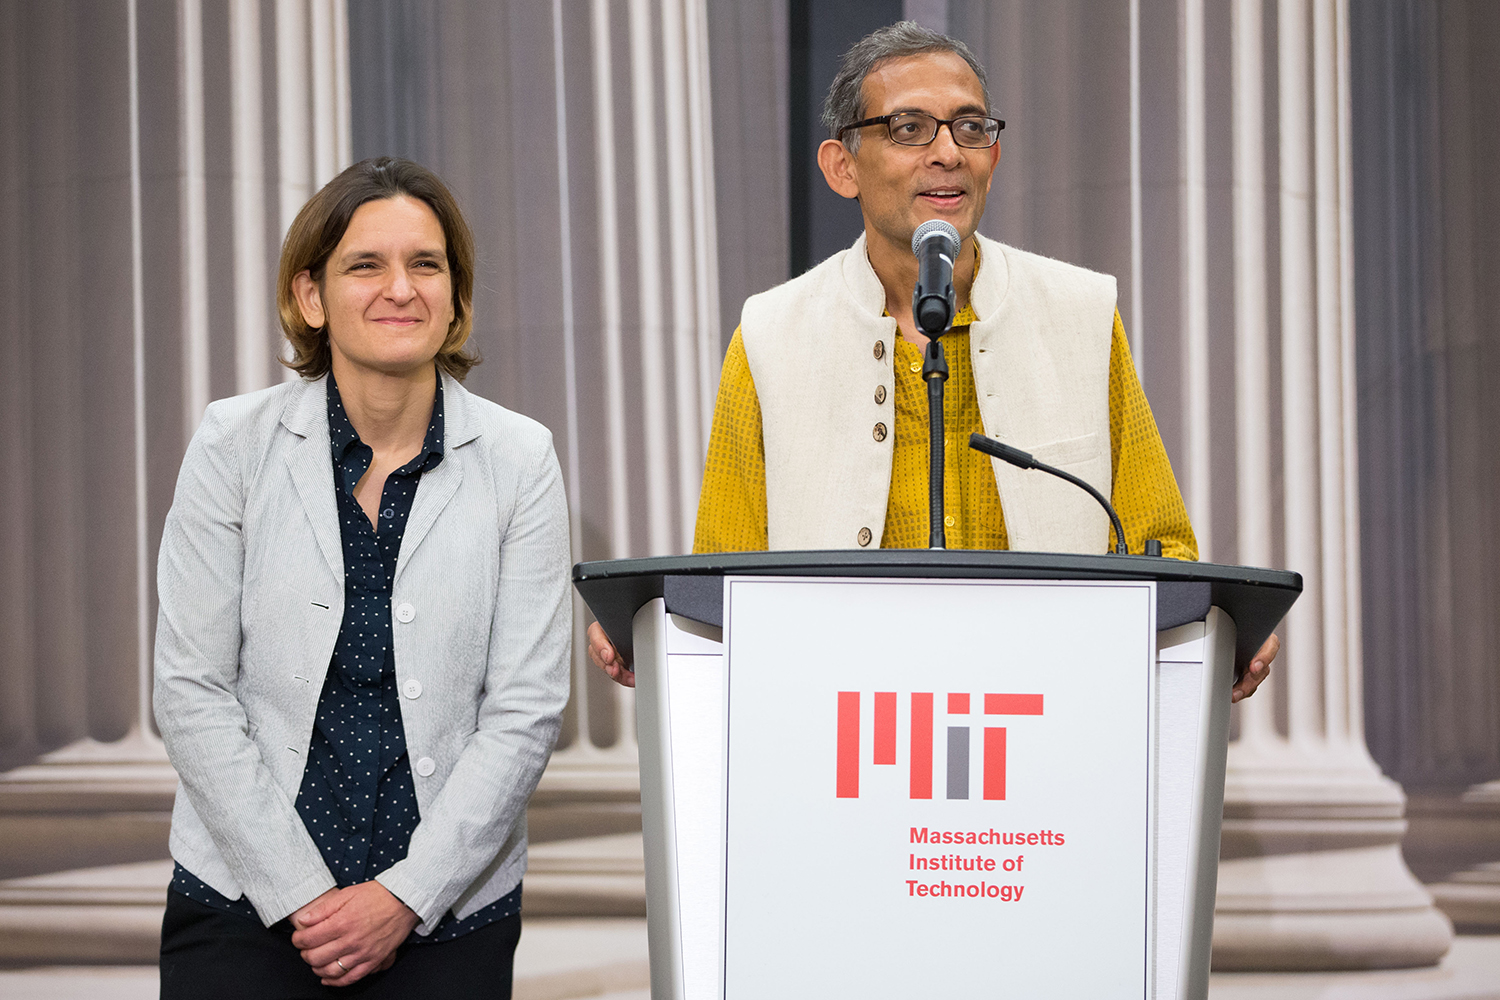 Esther Duflo and Abhijit Banerjee, who share a 2019 Nobel Prize in Economics with Michael Kremer, answer questions during a press conference on Oct. 14 in Cambridge, Mass.